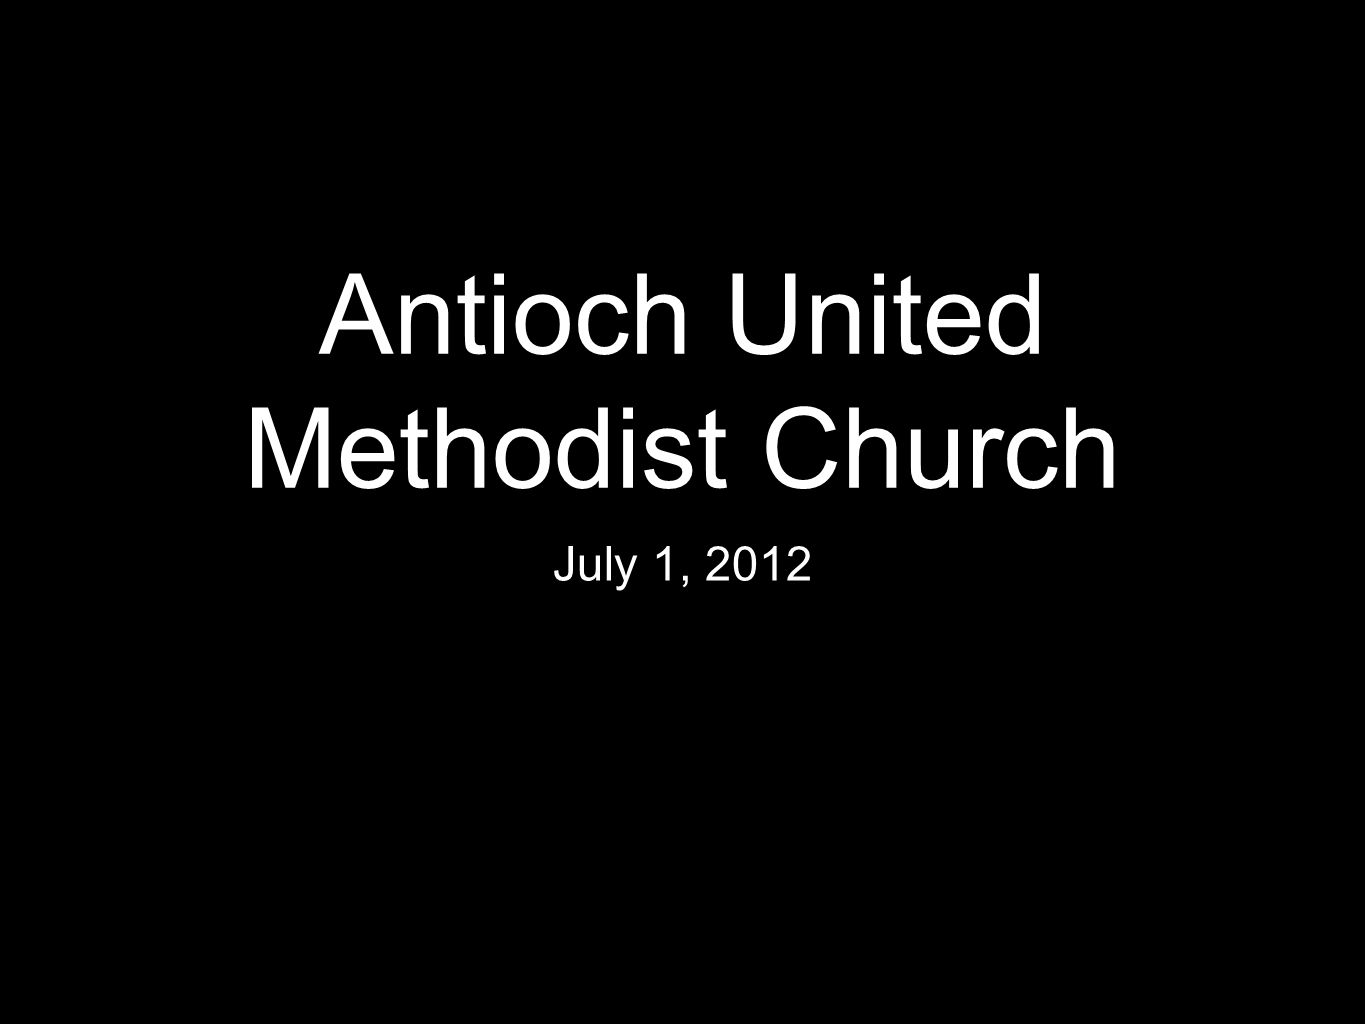 Antioch United Methodist Church July 1, 2012